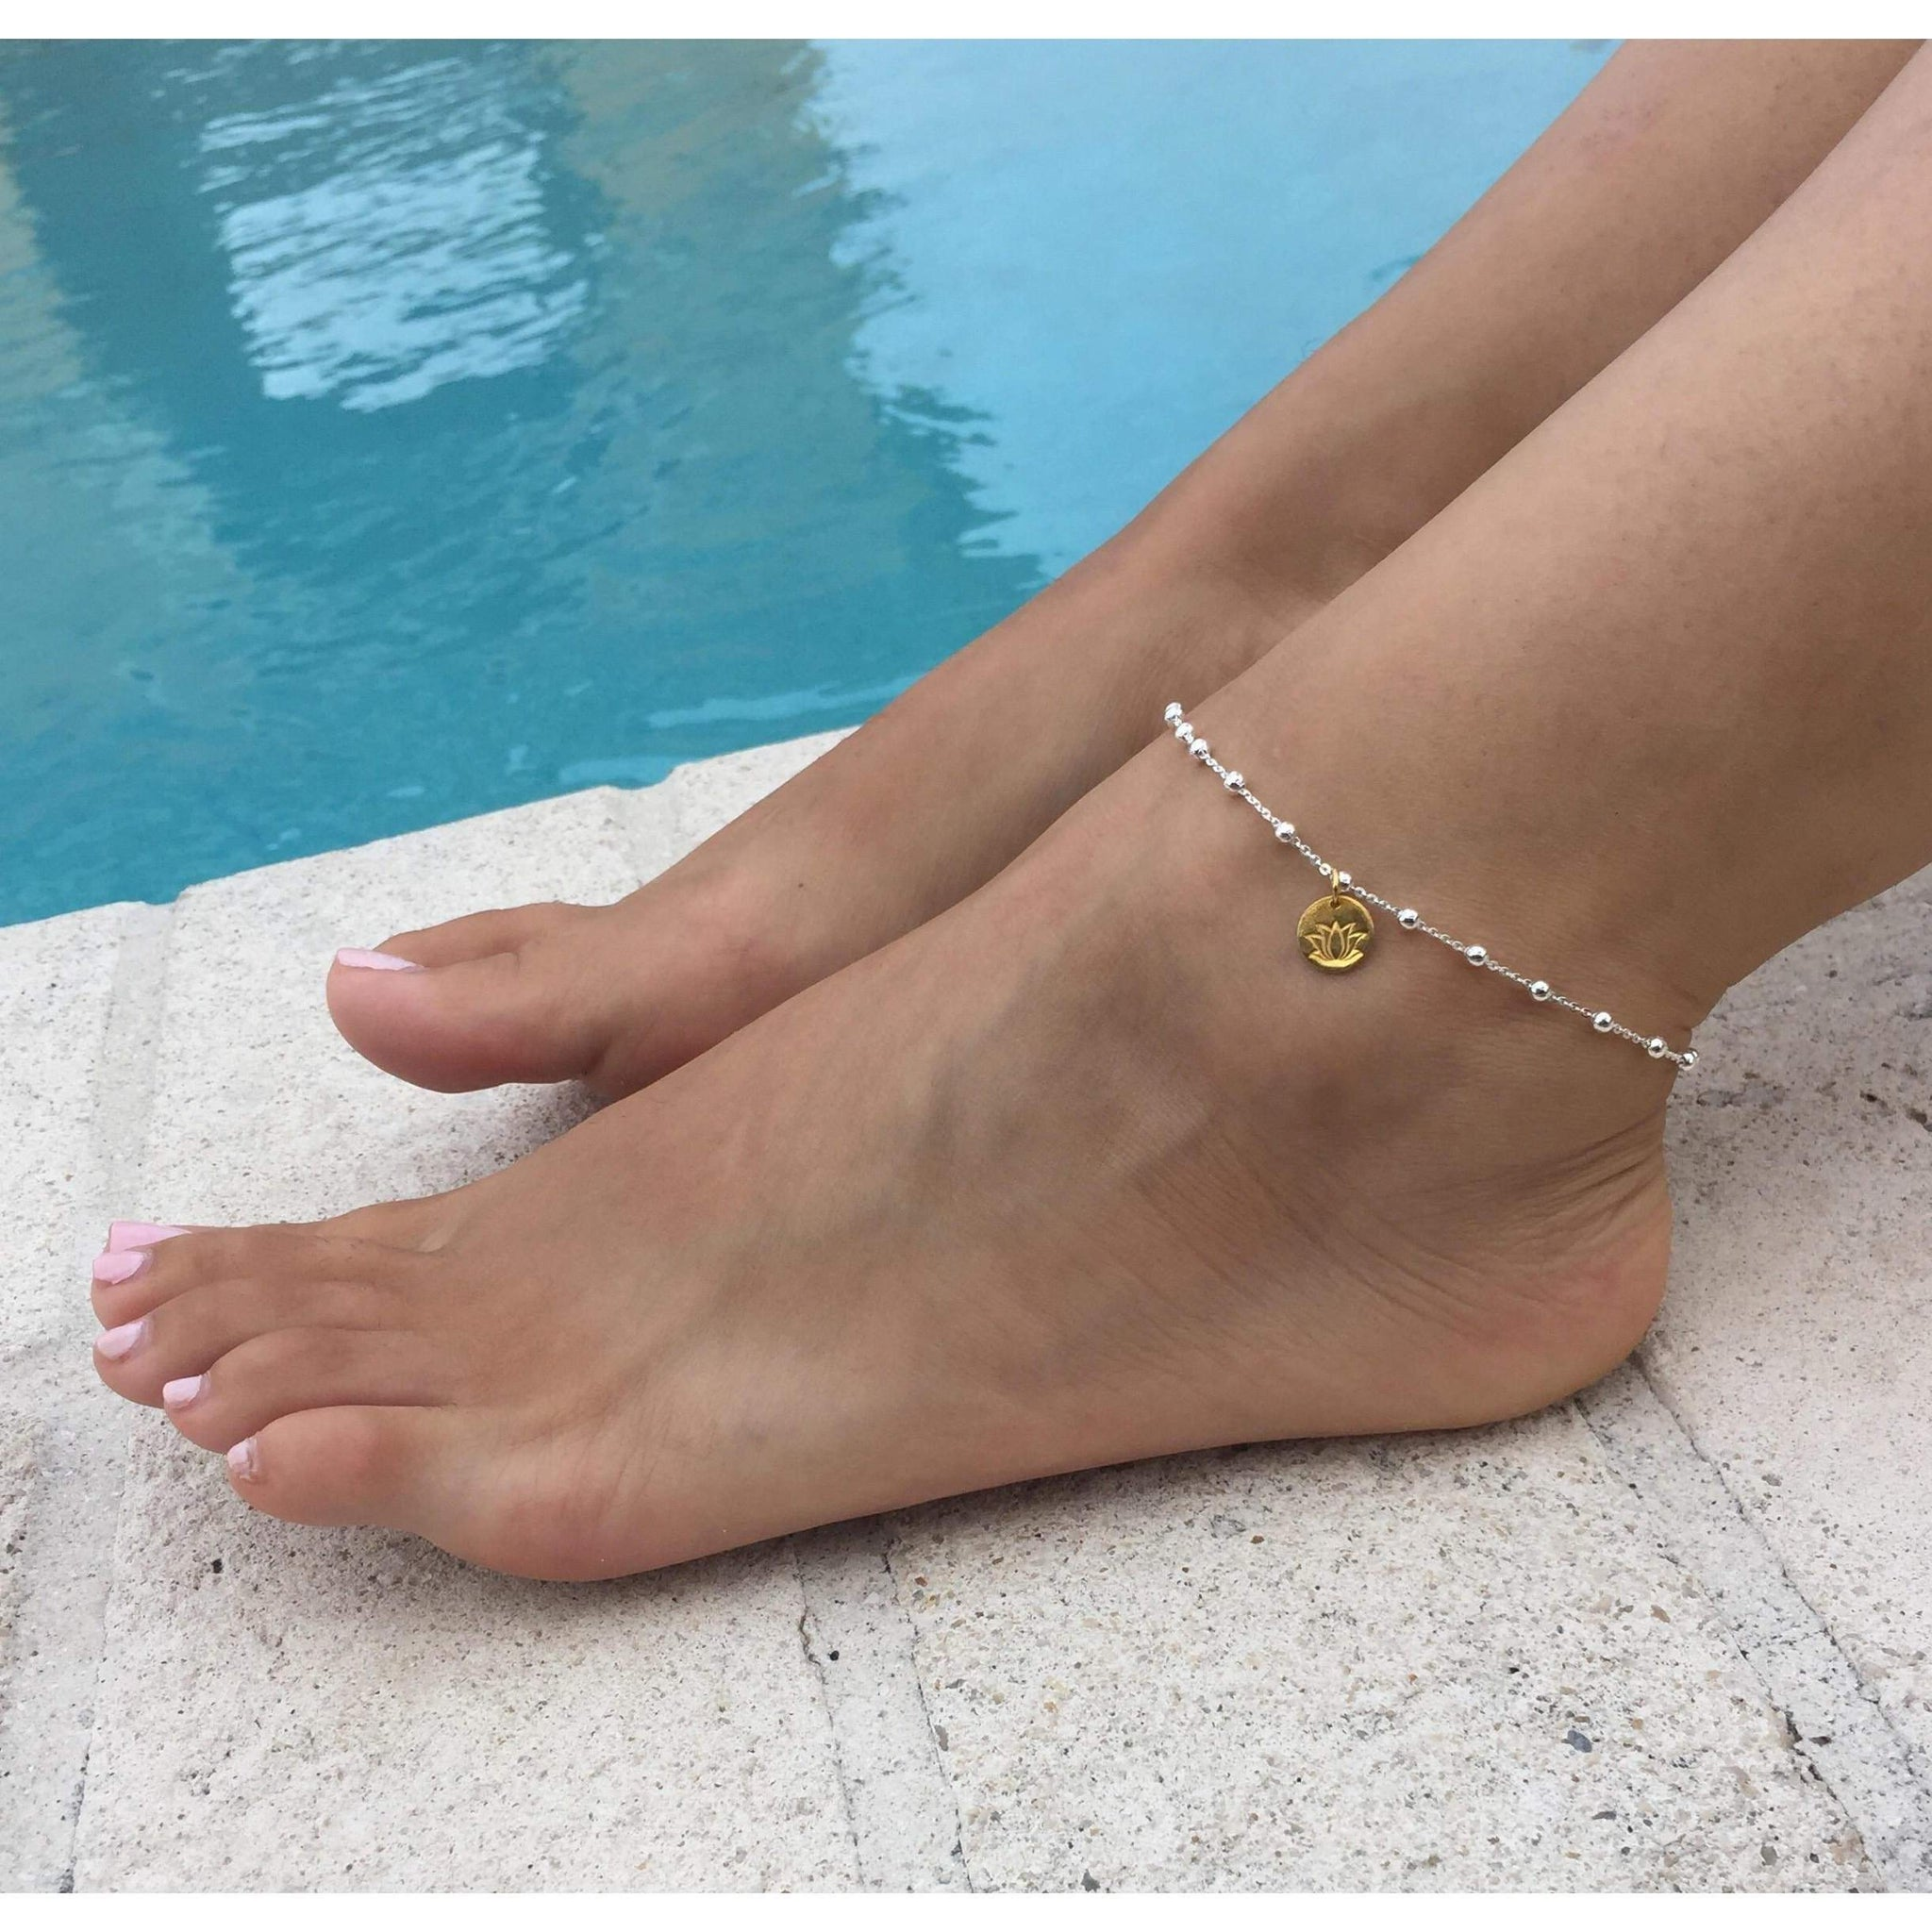 sterling bracelets bell note music notes product ssa heart silver fish ankle bracelet anklet charm